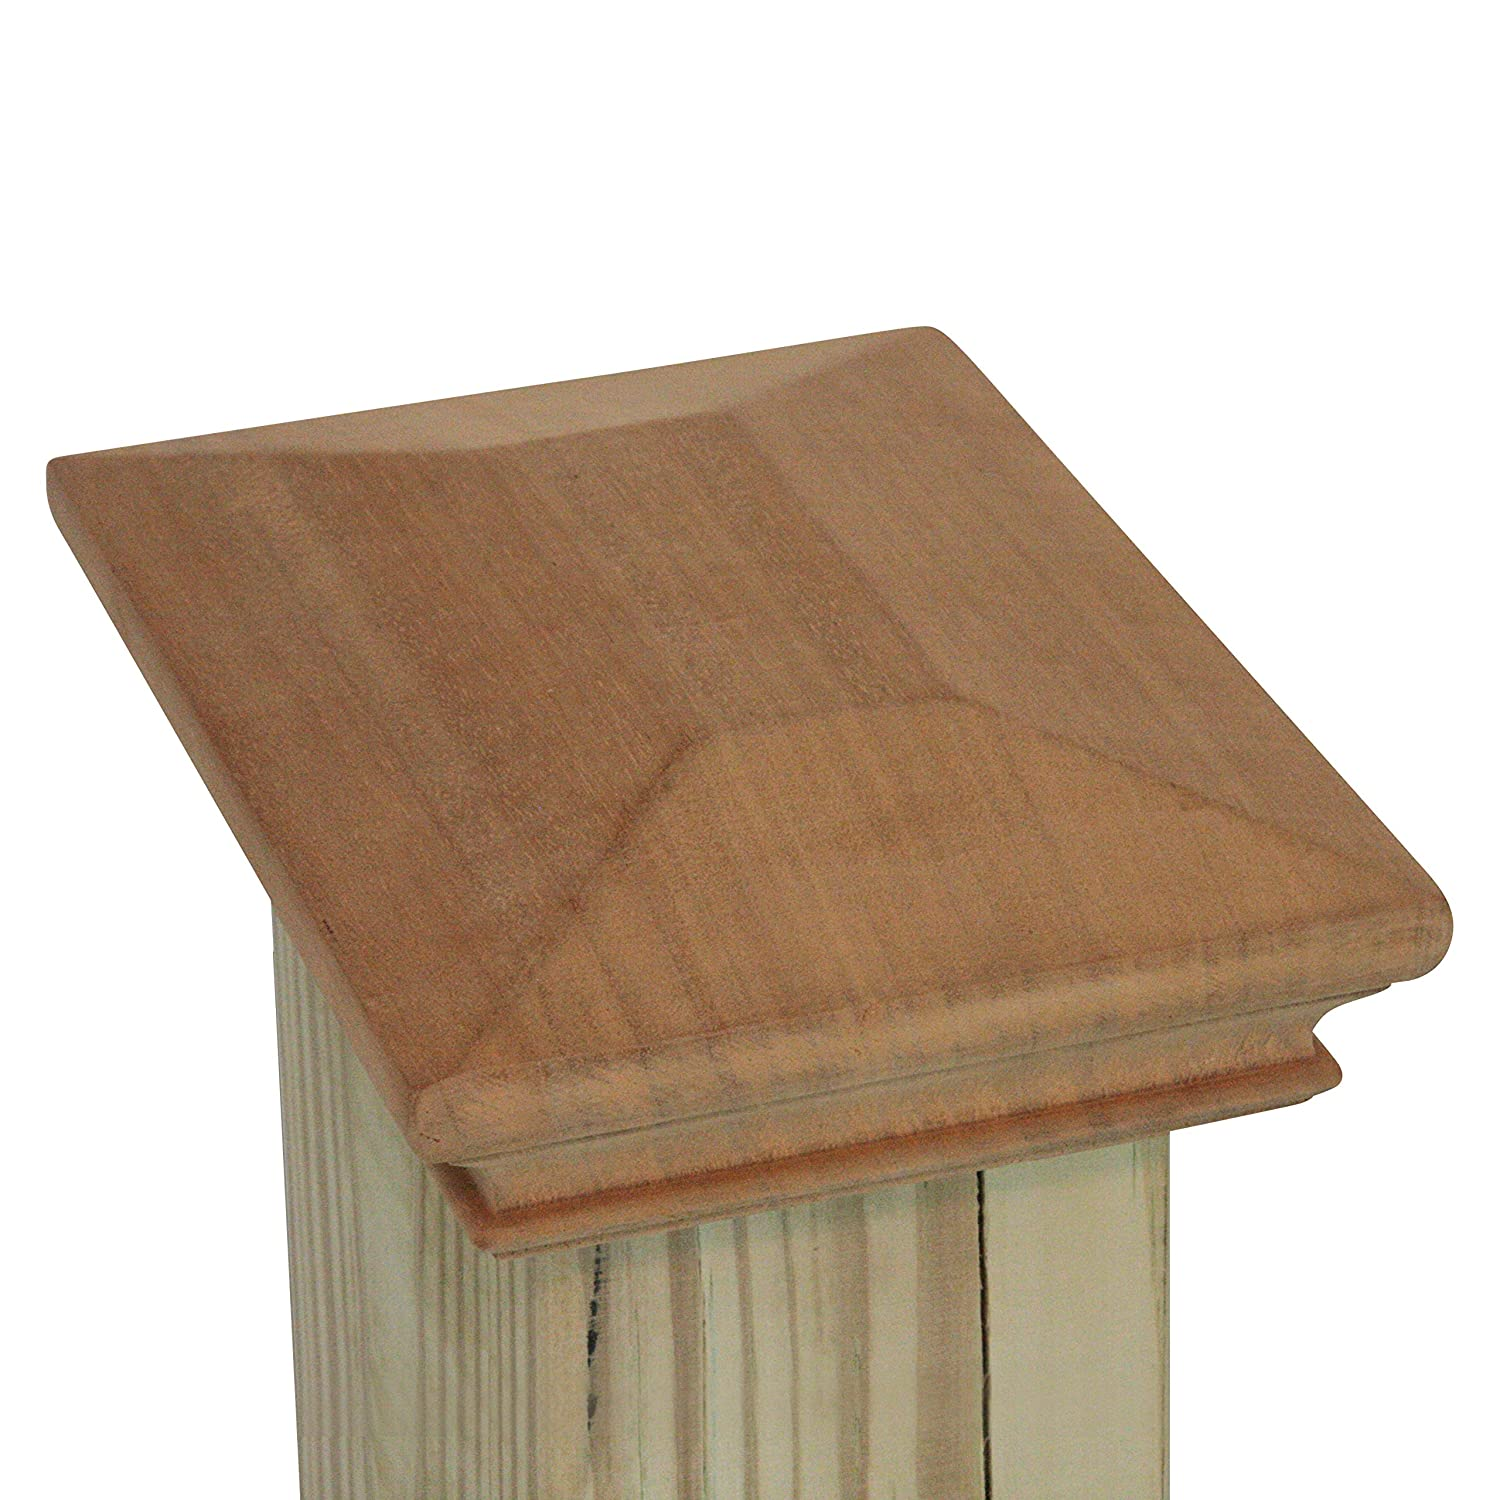 Captiva 4x6 Wood Pyramid Post Cap by One-Piece Miterless 3//8 Extended Lip 4 x 6